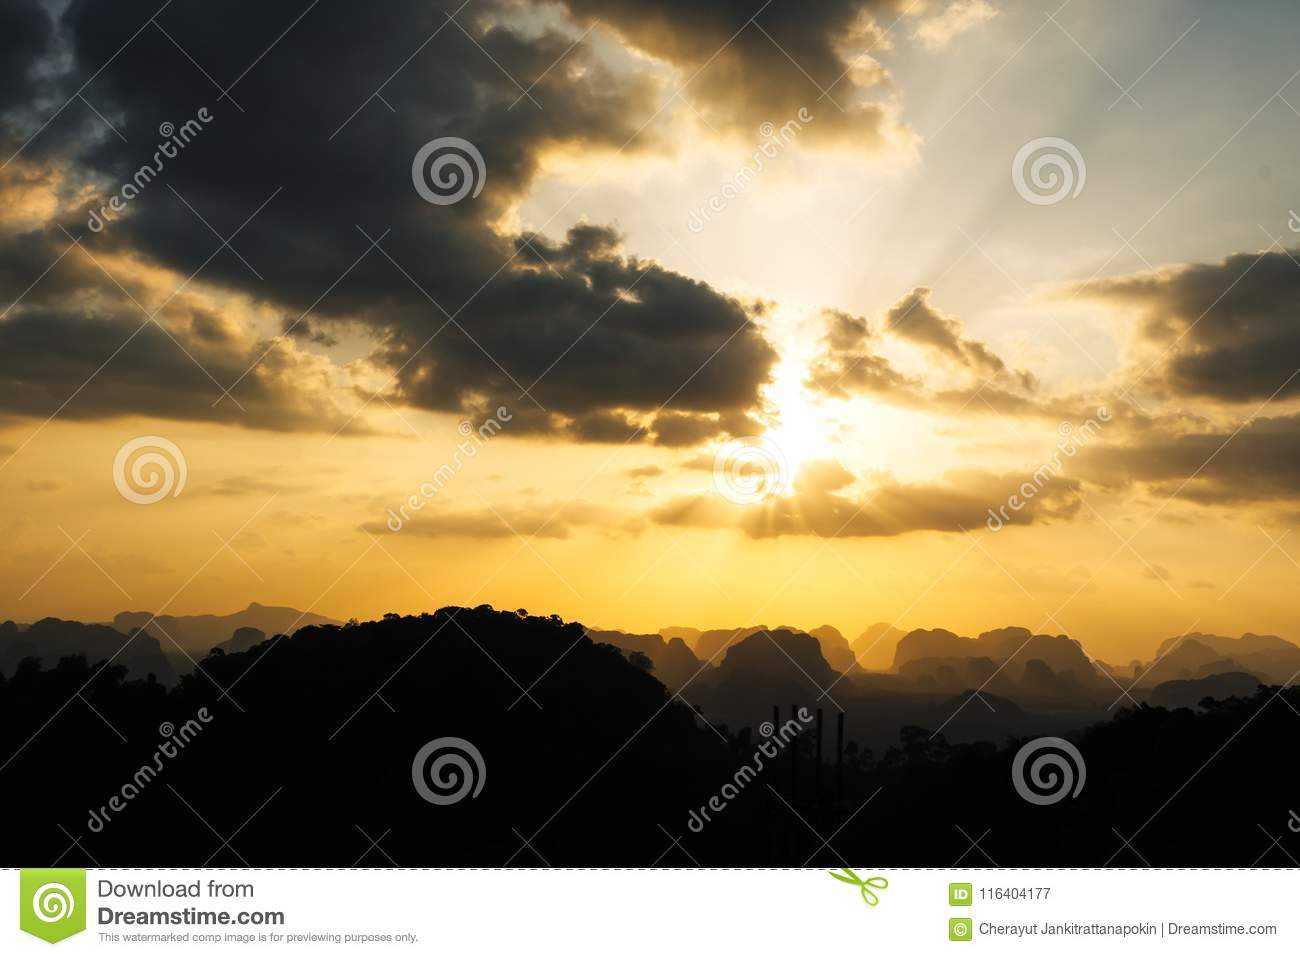 Silhouette Of Mountain And Orange Summer Sunset Background